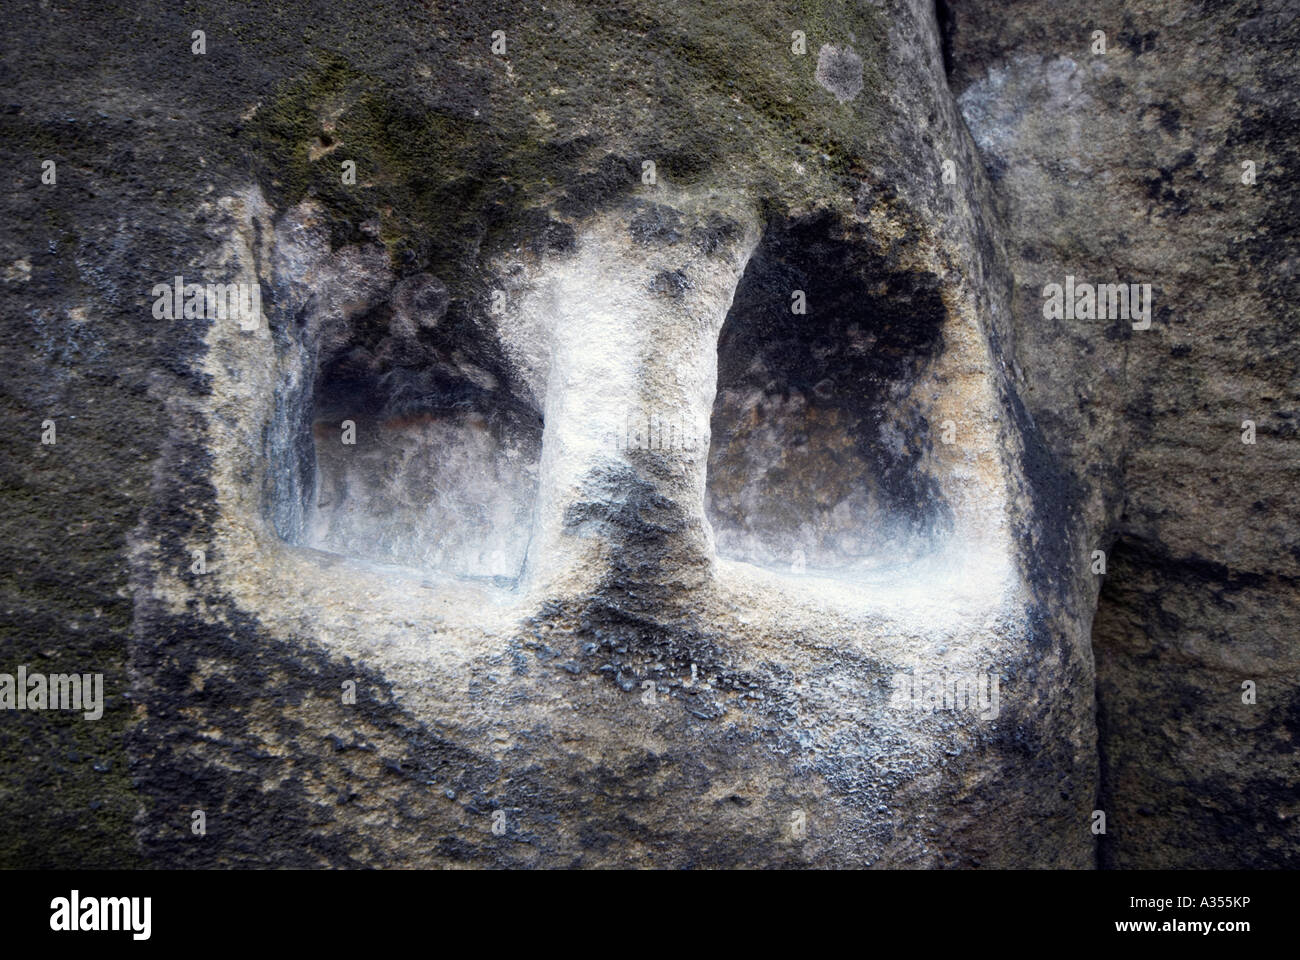 Two 'Hand grips' chalked on Buckstone under in Derbyshire 'Great Britain' - Stock Image